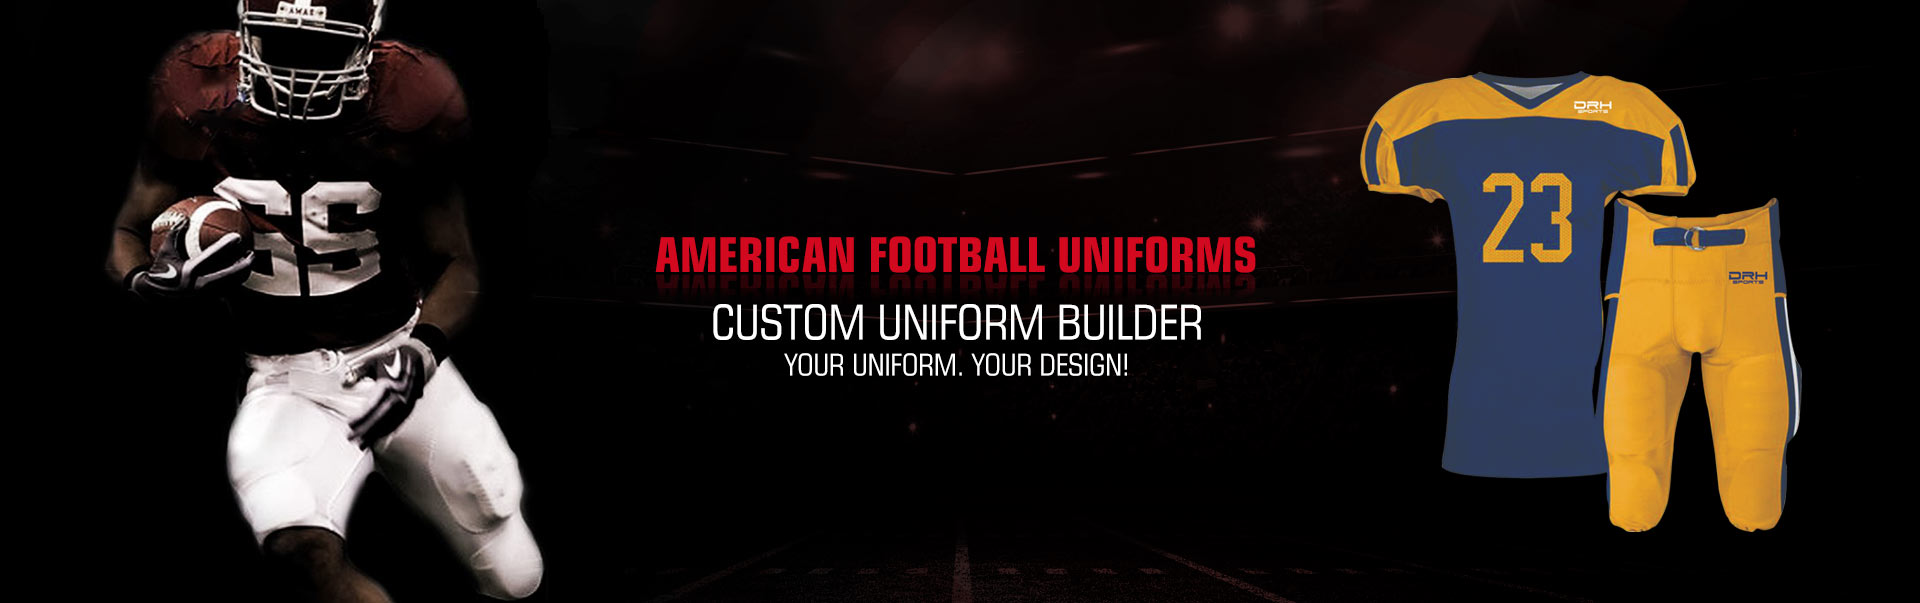 American Football Uniform Wholesaler, Suppliers in Limoges